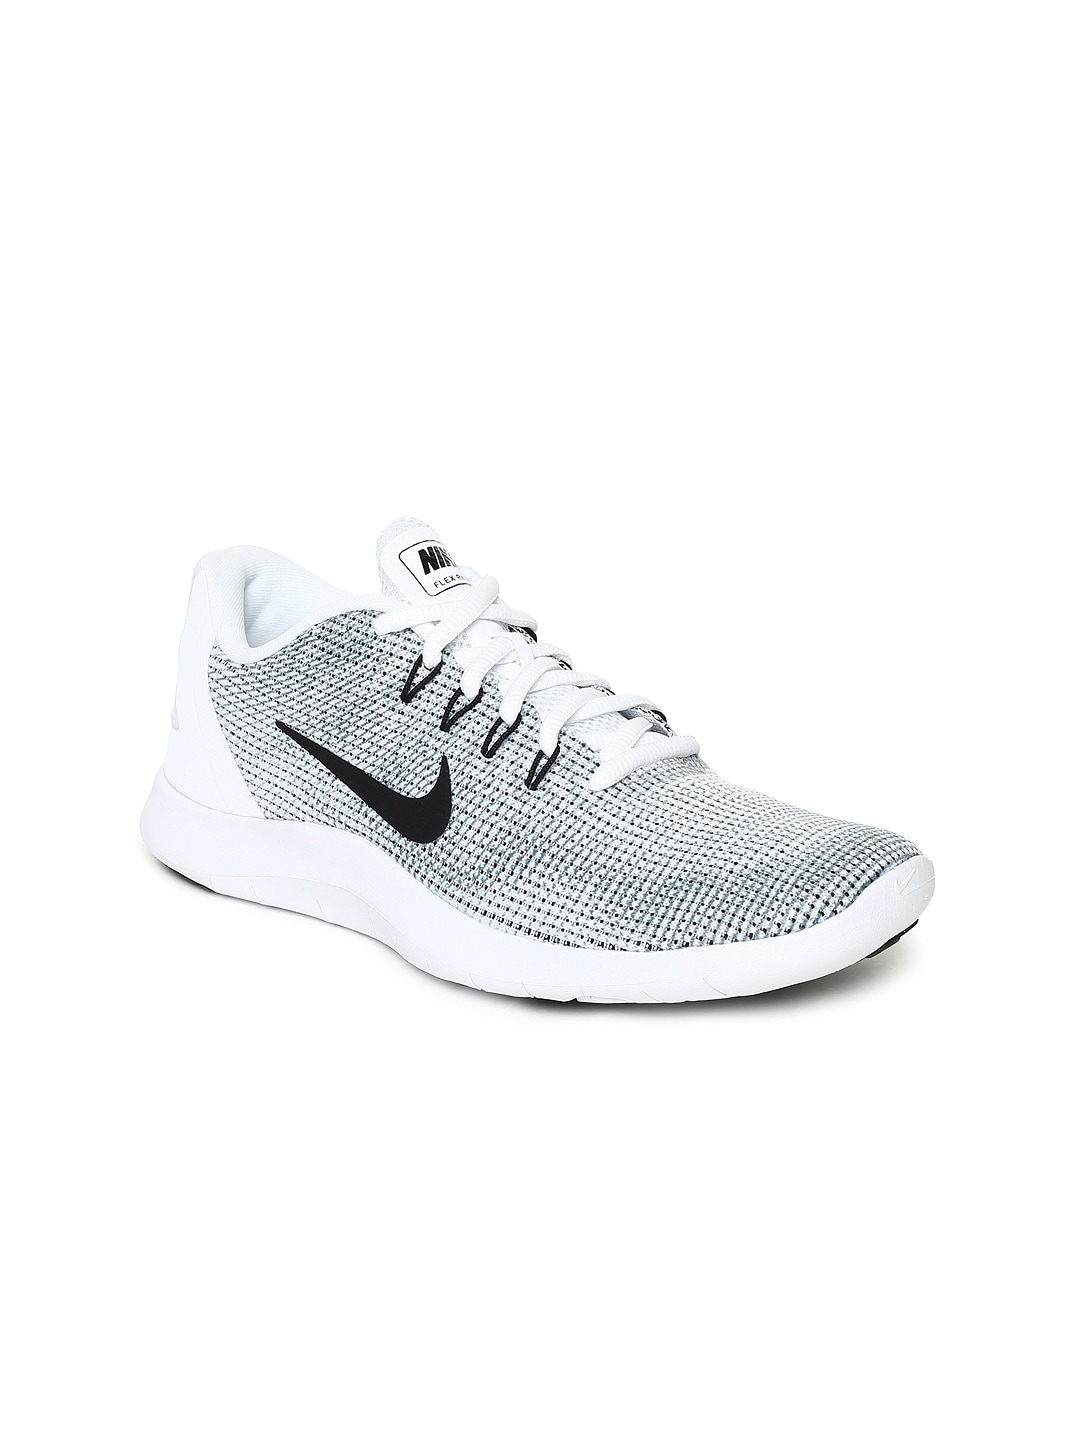 buy popular 05471 799d0 Nike Running Shoes - Buy Nike Running Shoes Online   Myntra